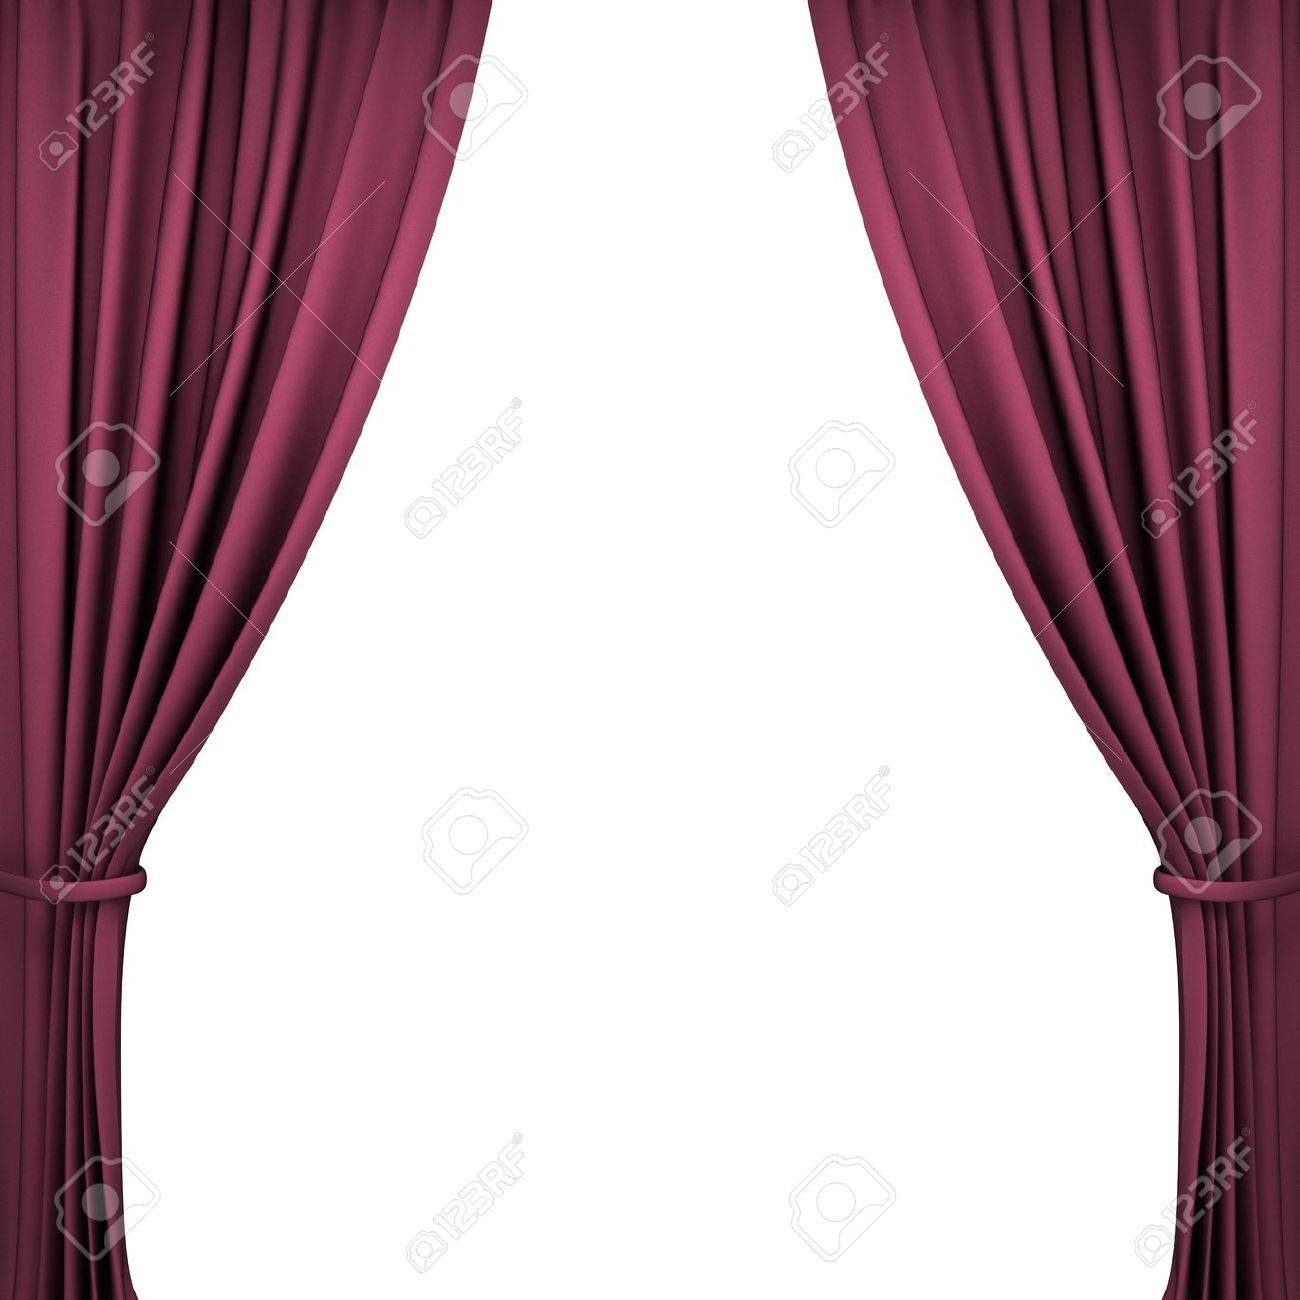 Stage curtain background open stage curtains background red stage - Red Velvet Theater Curtains On White Background Stock Photo 14813798